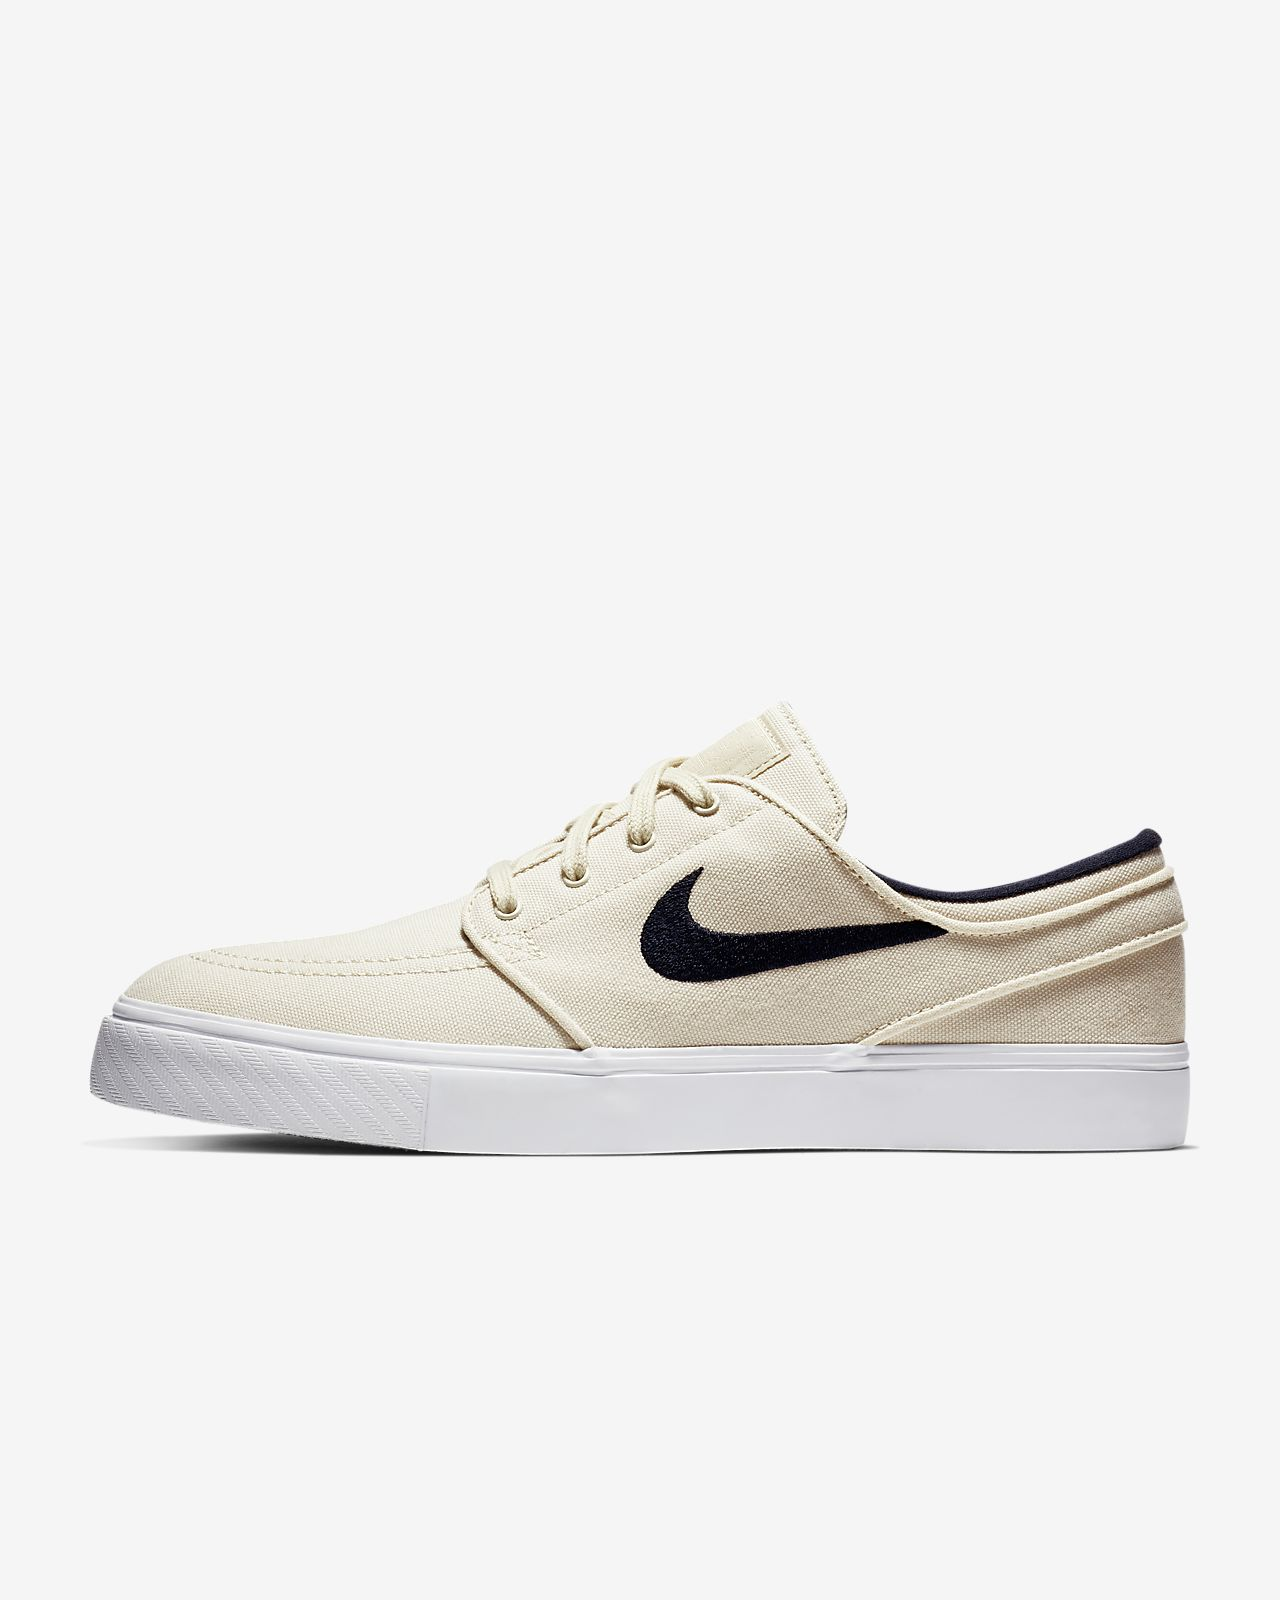 best website 85f0f 89be1 ... Chaussure de skateboard Nike SB Zoom Stefan Janoski Canvas pour Homme